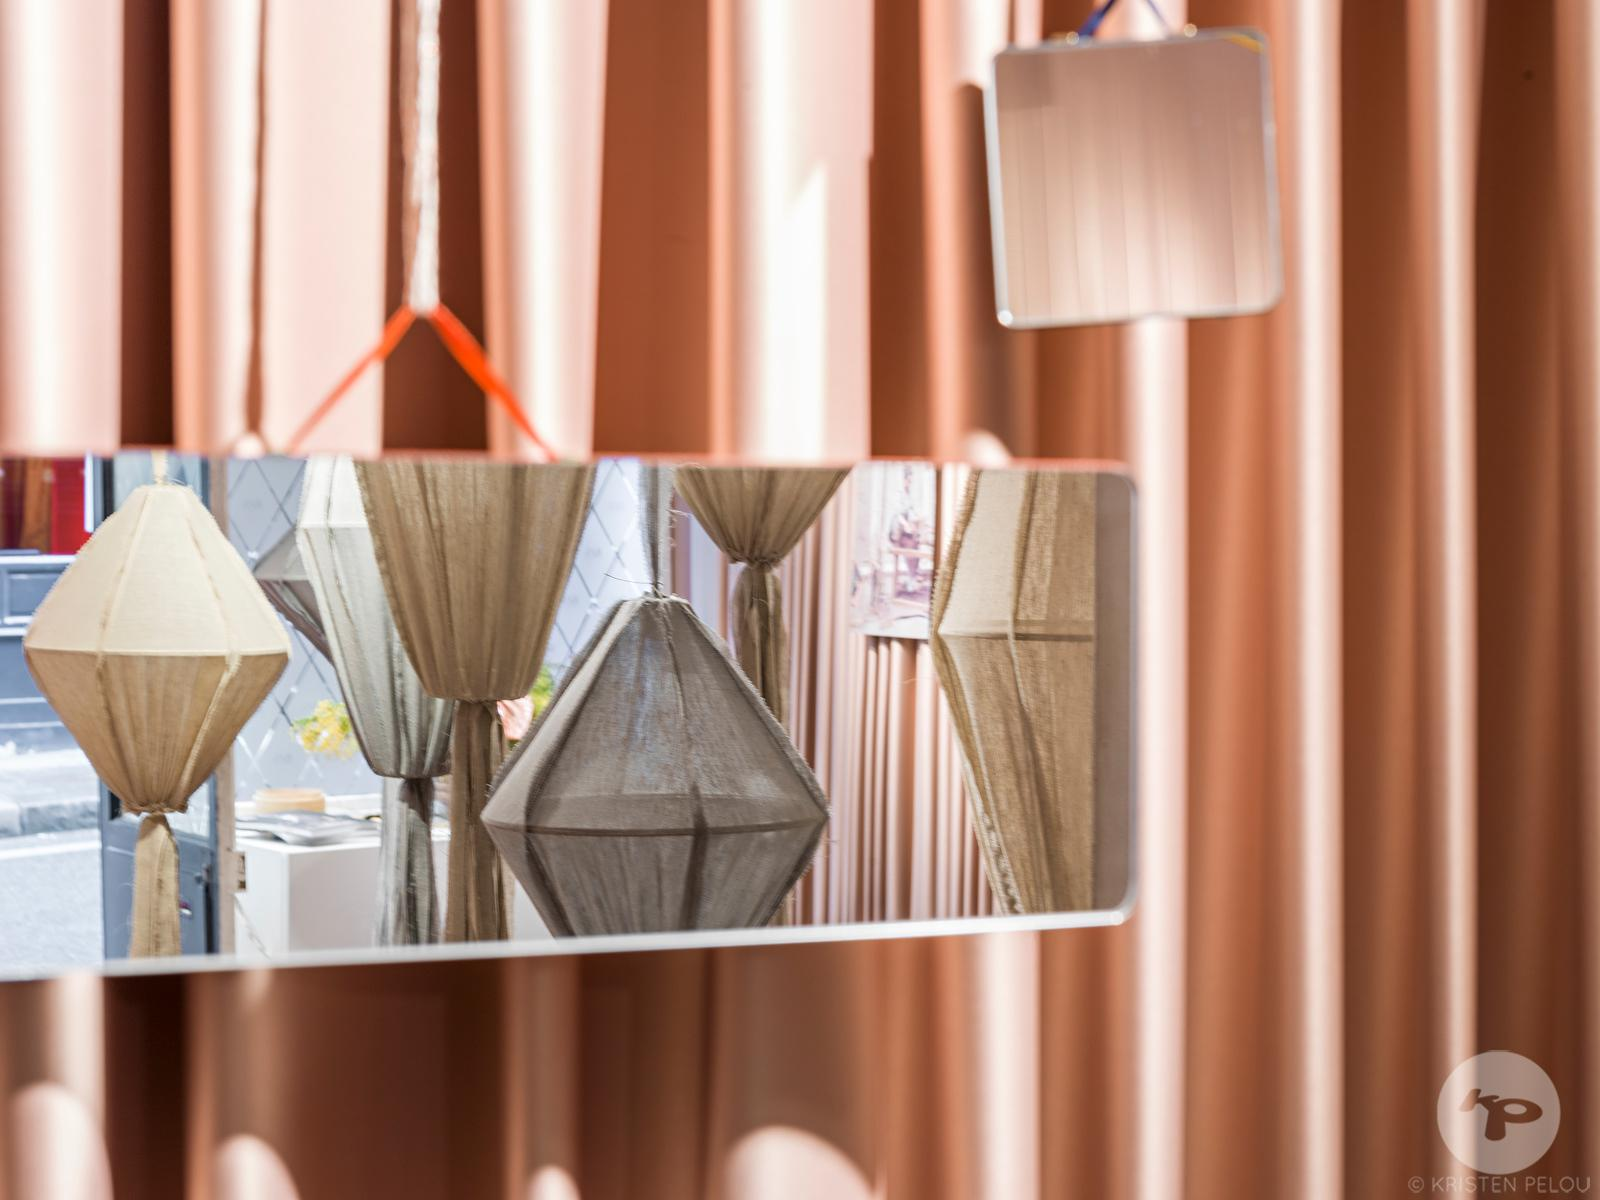 Retail architecture photographer - JAB Pop Up during Paris Deco Off 2018 designed by Jutta Werner, Paris, France. Photo ©Kris...